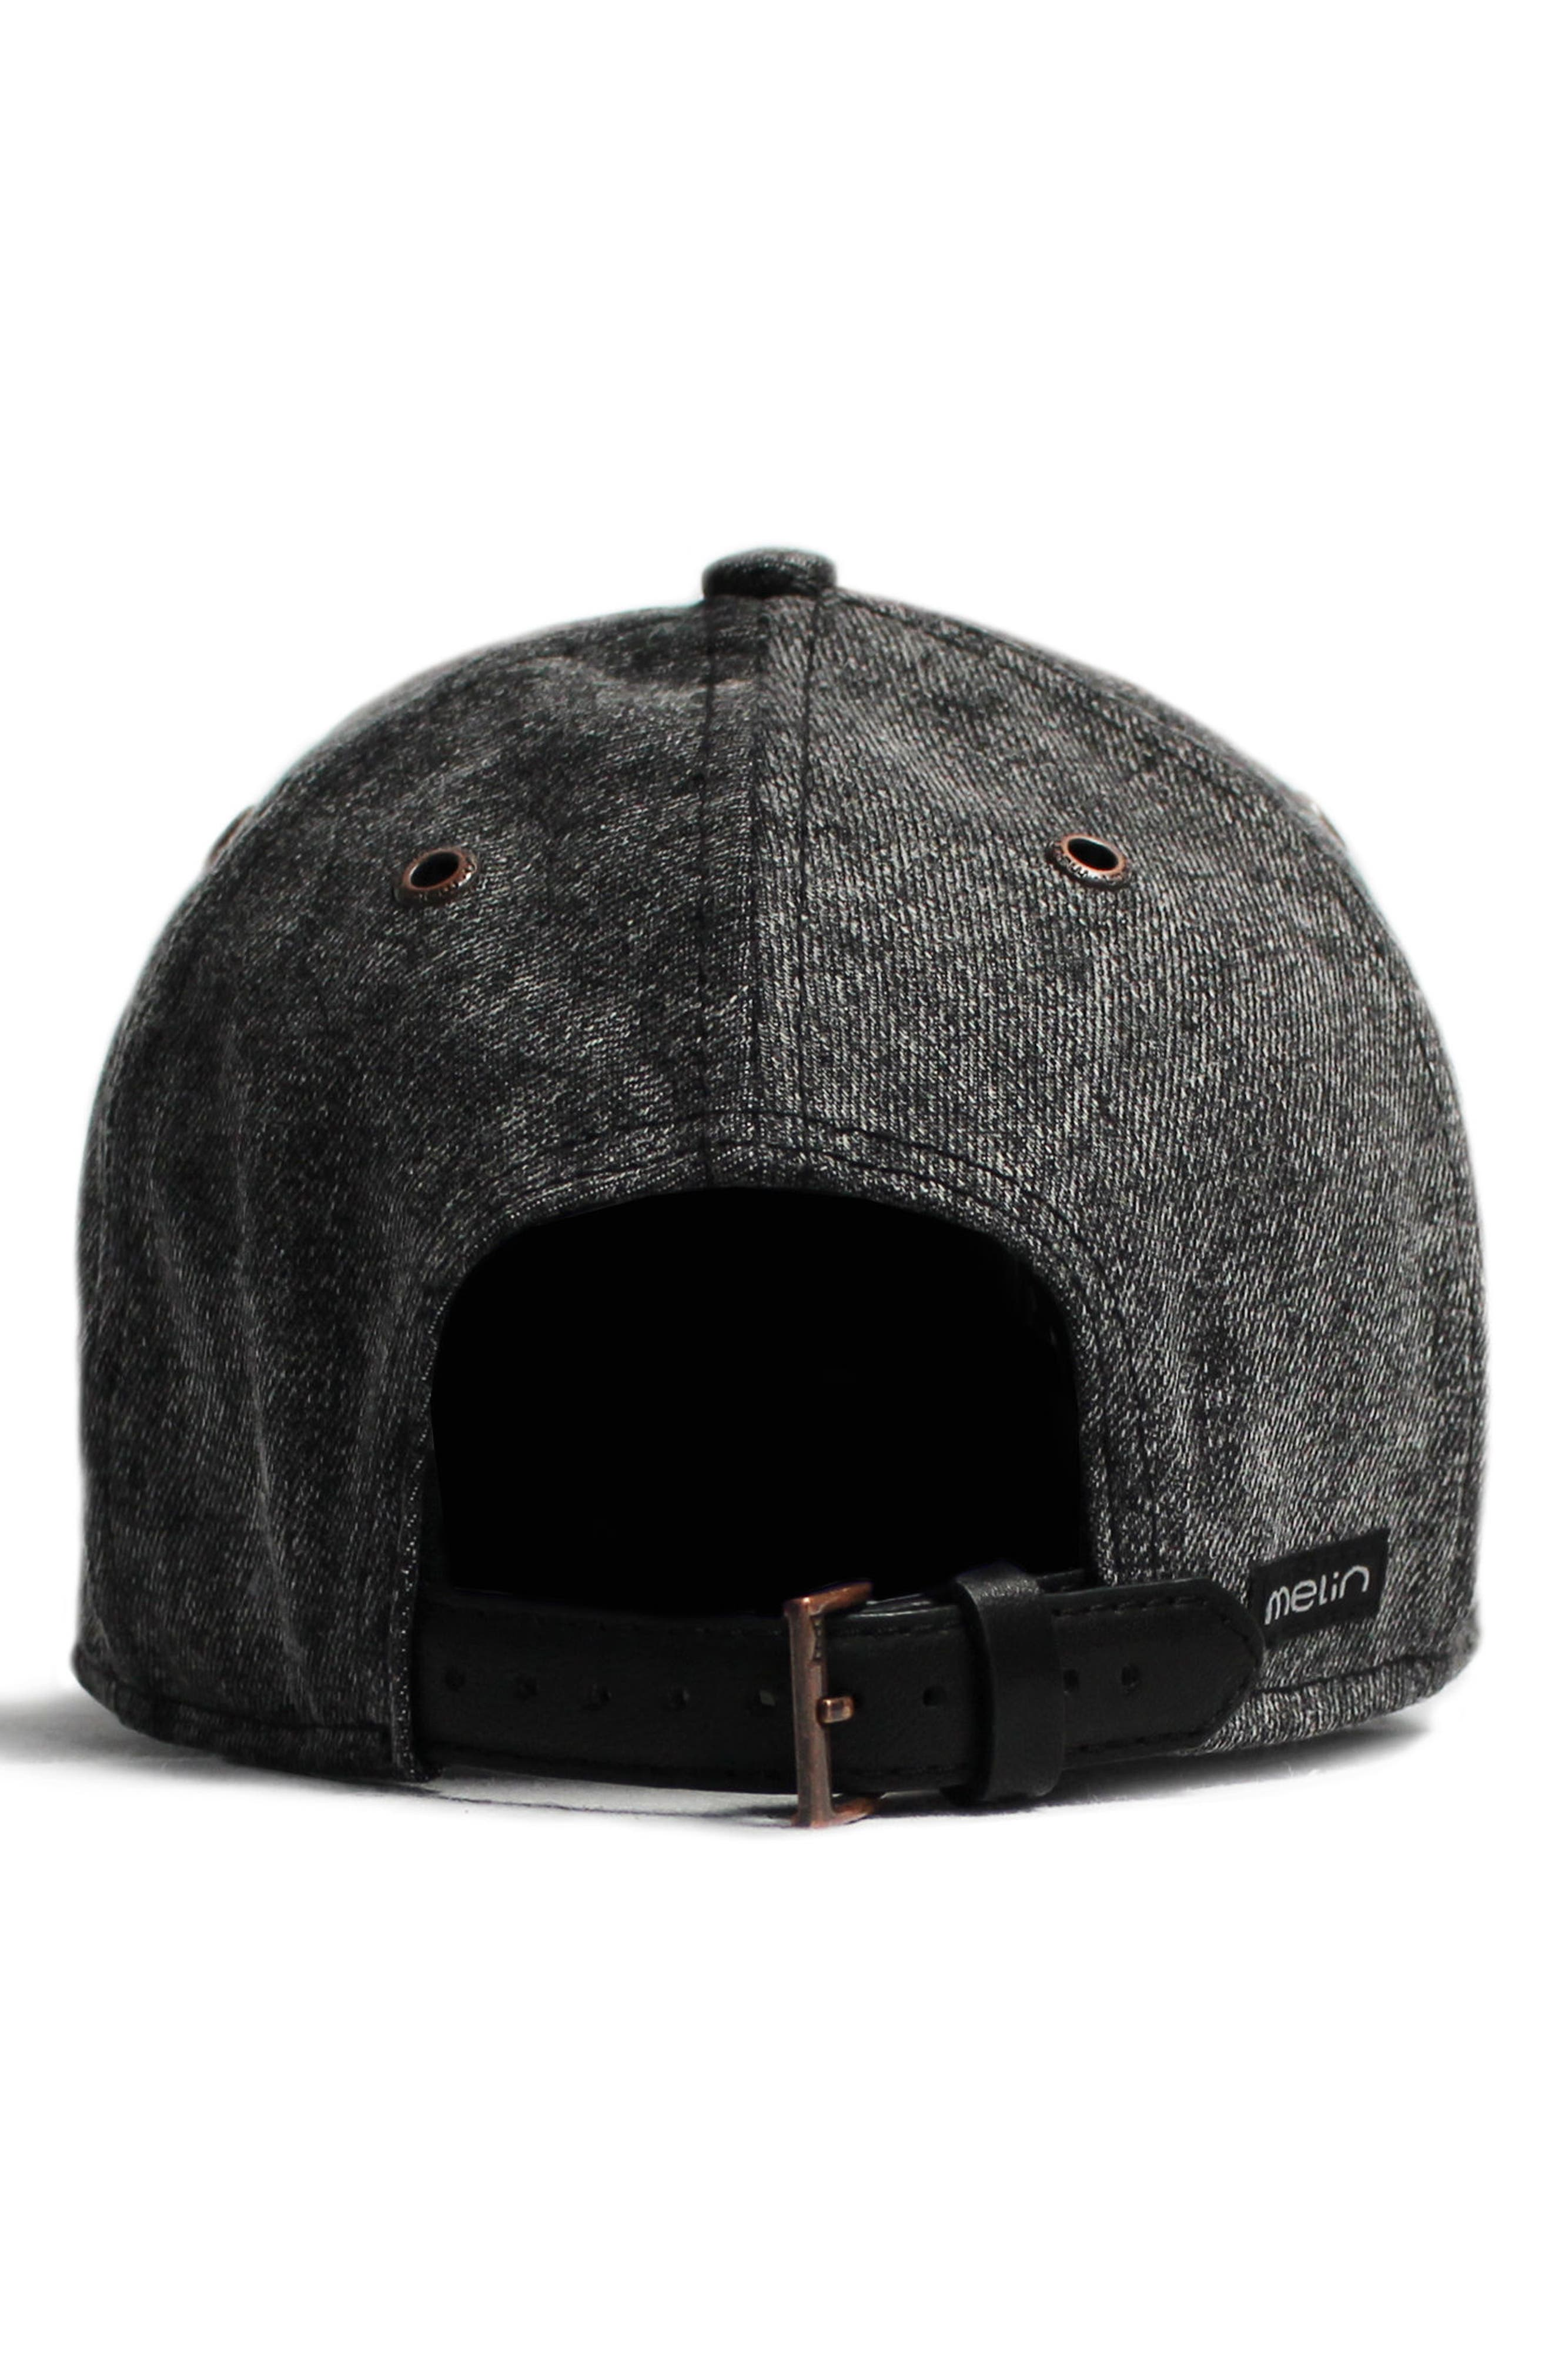 'The Haze' Vintage Fit Baseball Cap,                             Alternate thumbnail 2, color,                             Black